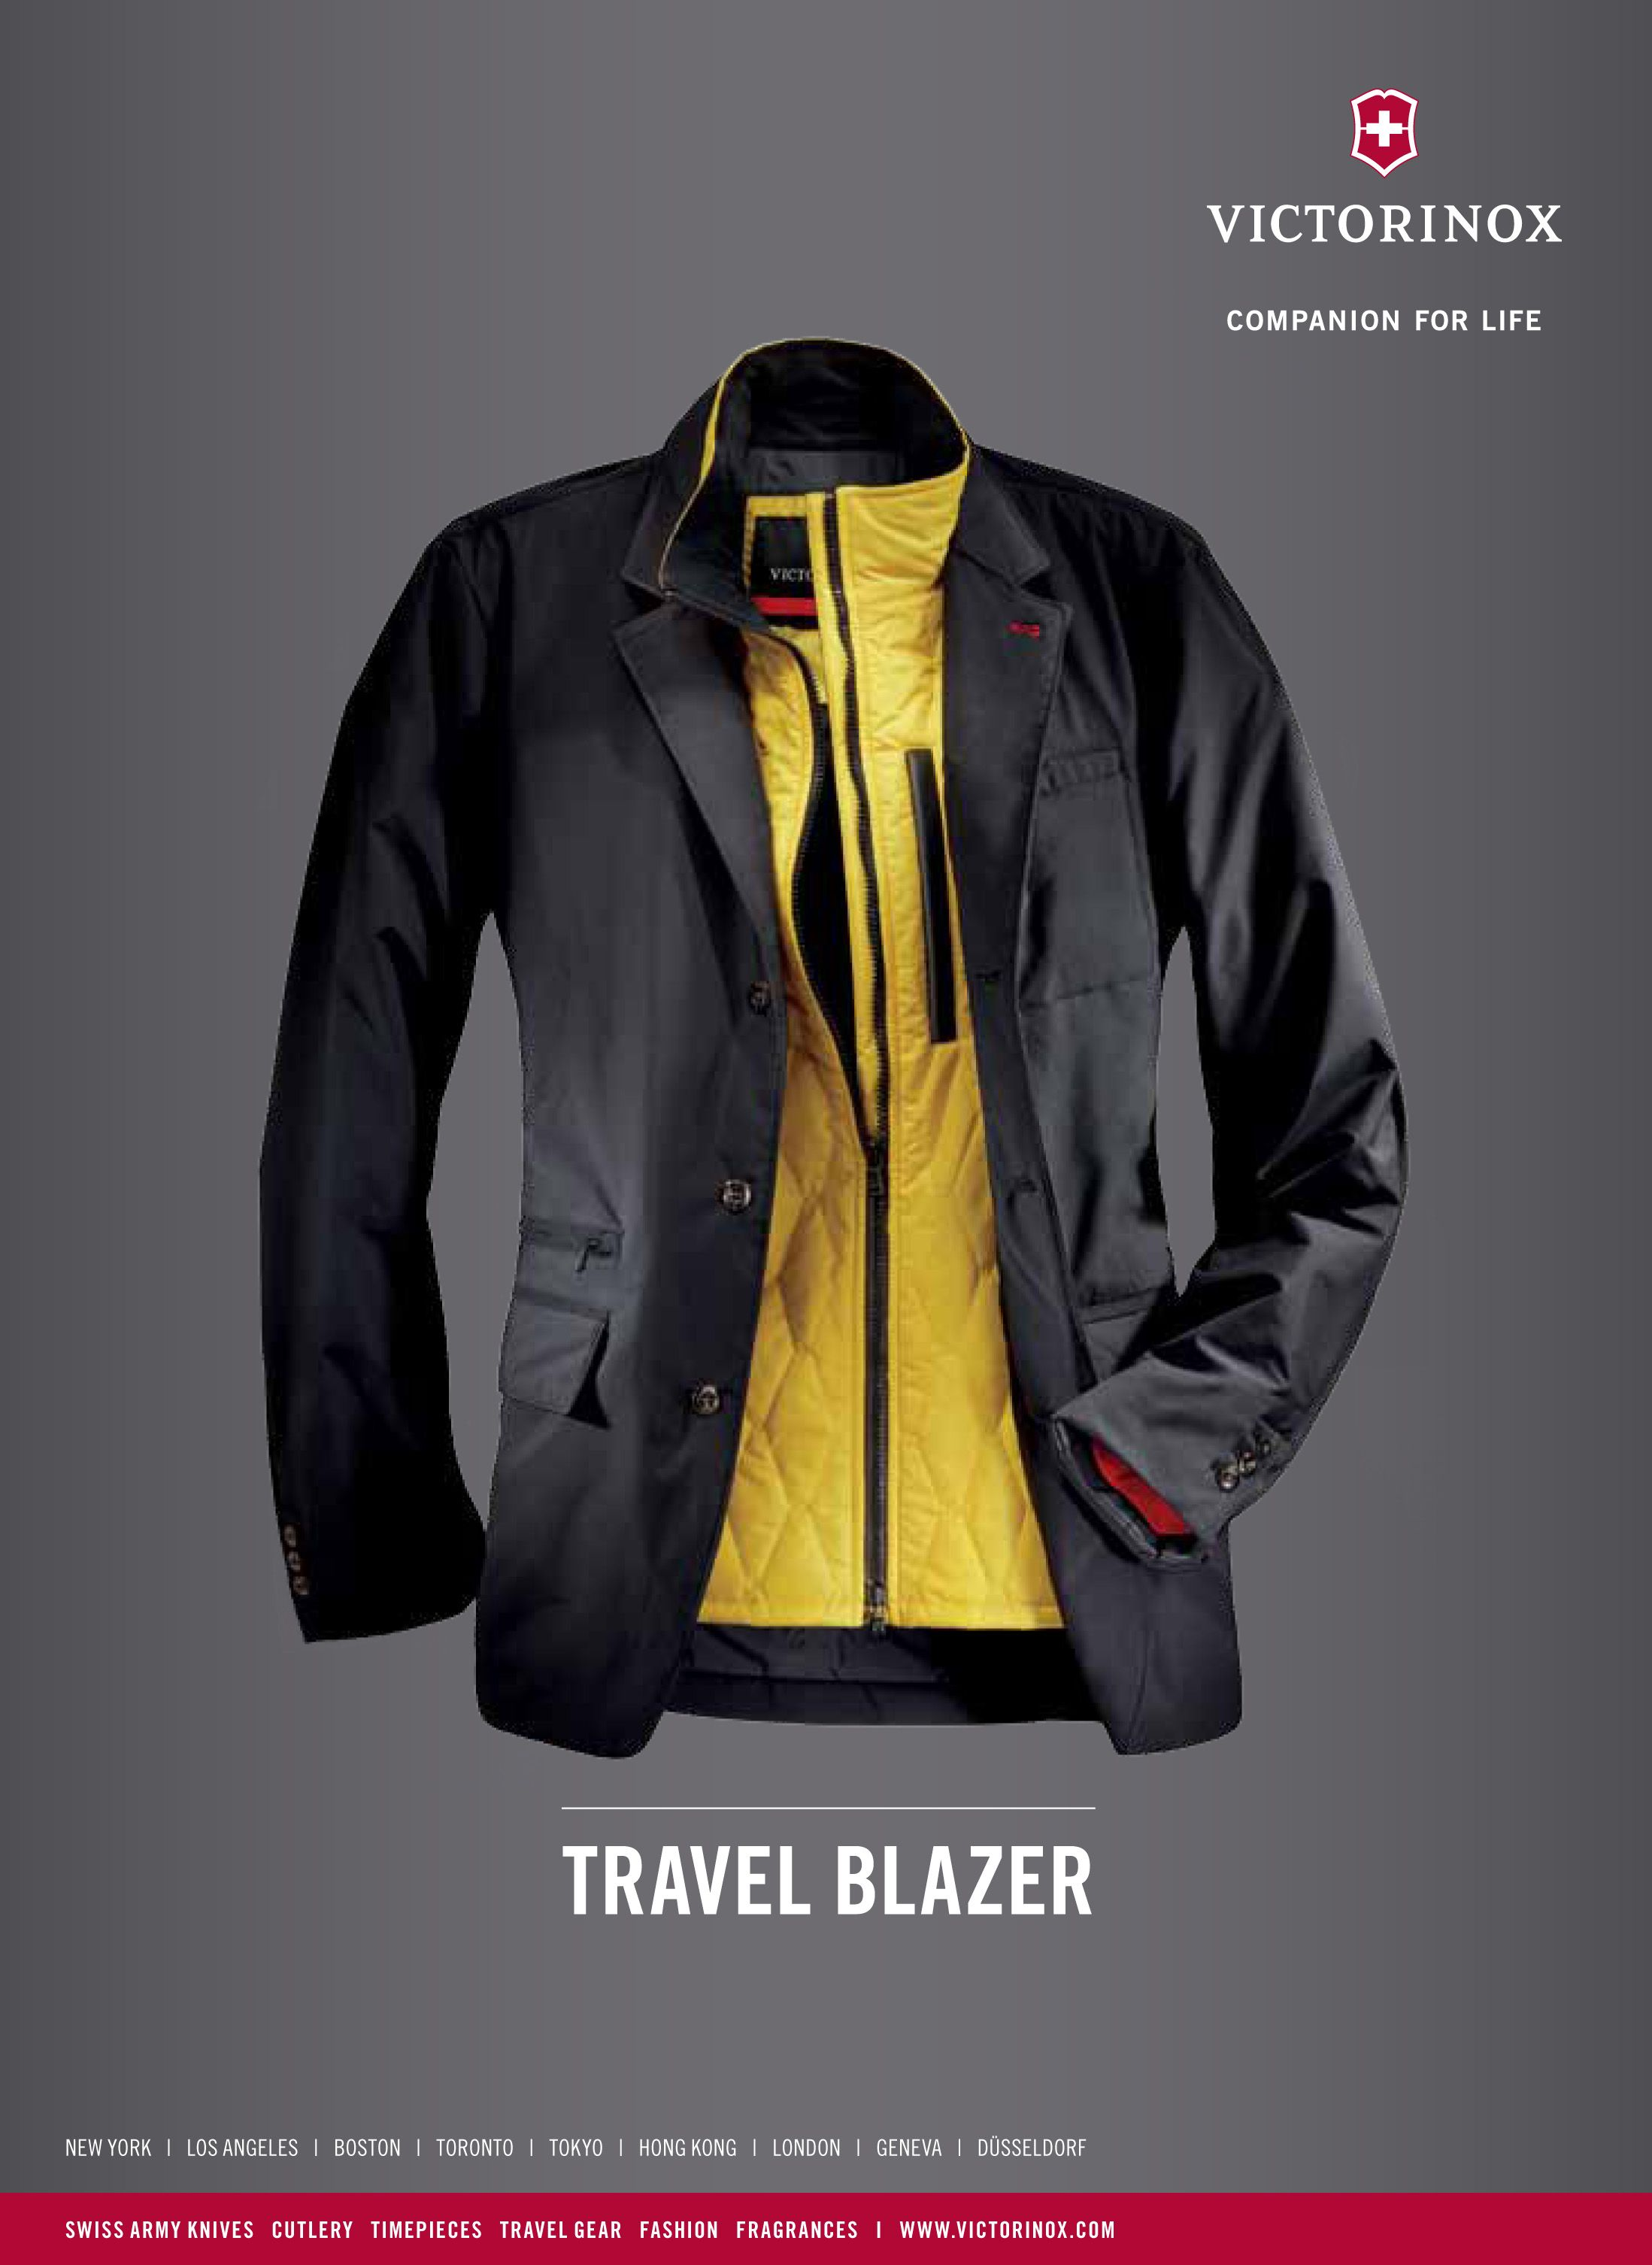 Victorinox - Travel Blazer | Victorinox Fashion - The Style Guide